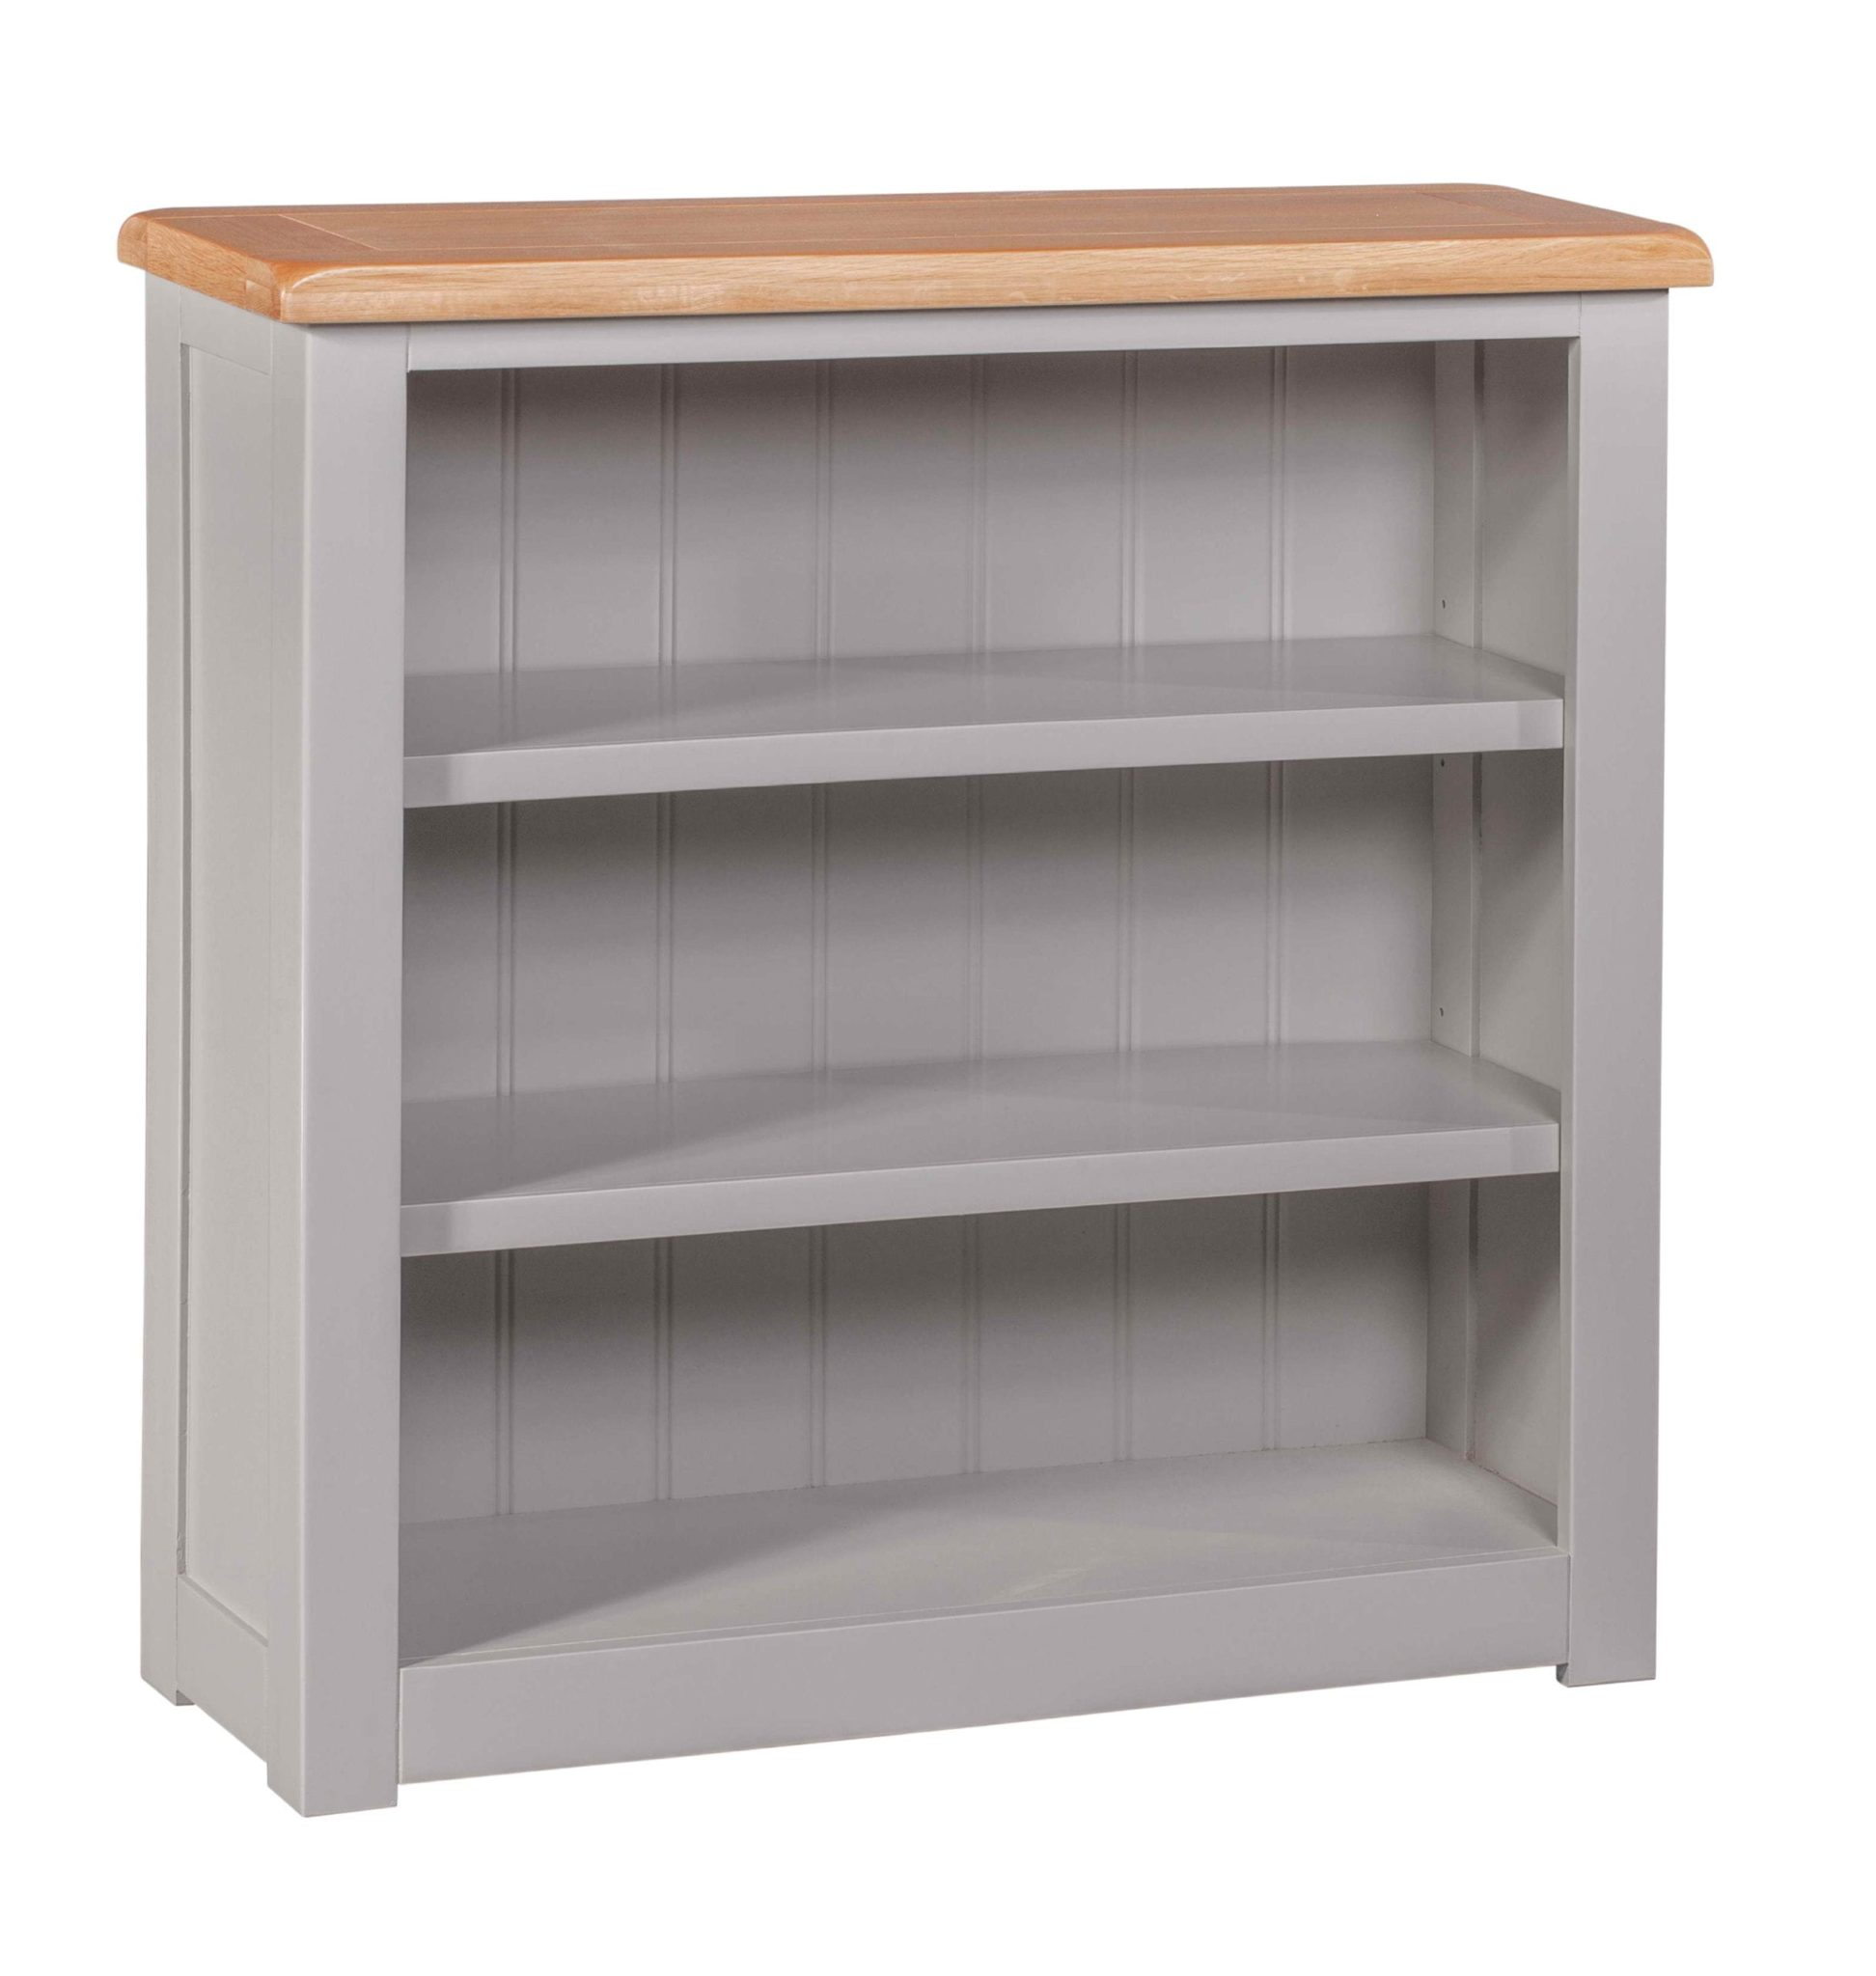 DIASBC Diamond painted small bookcase